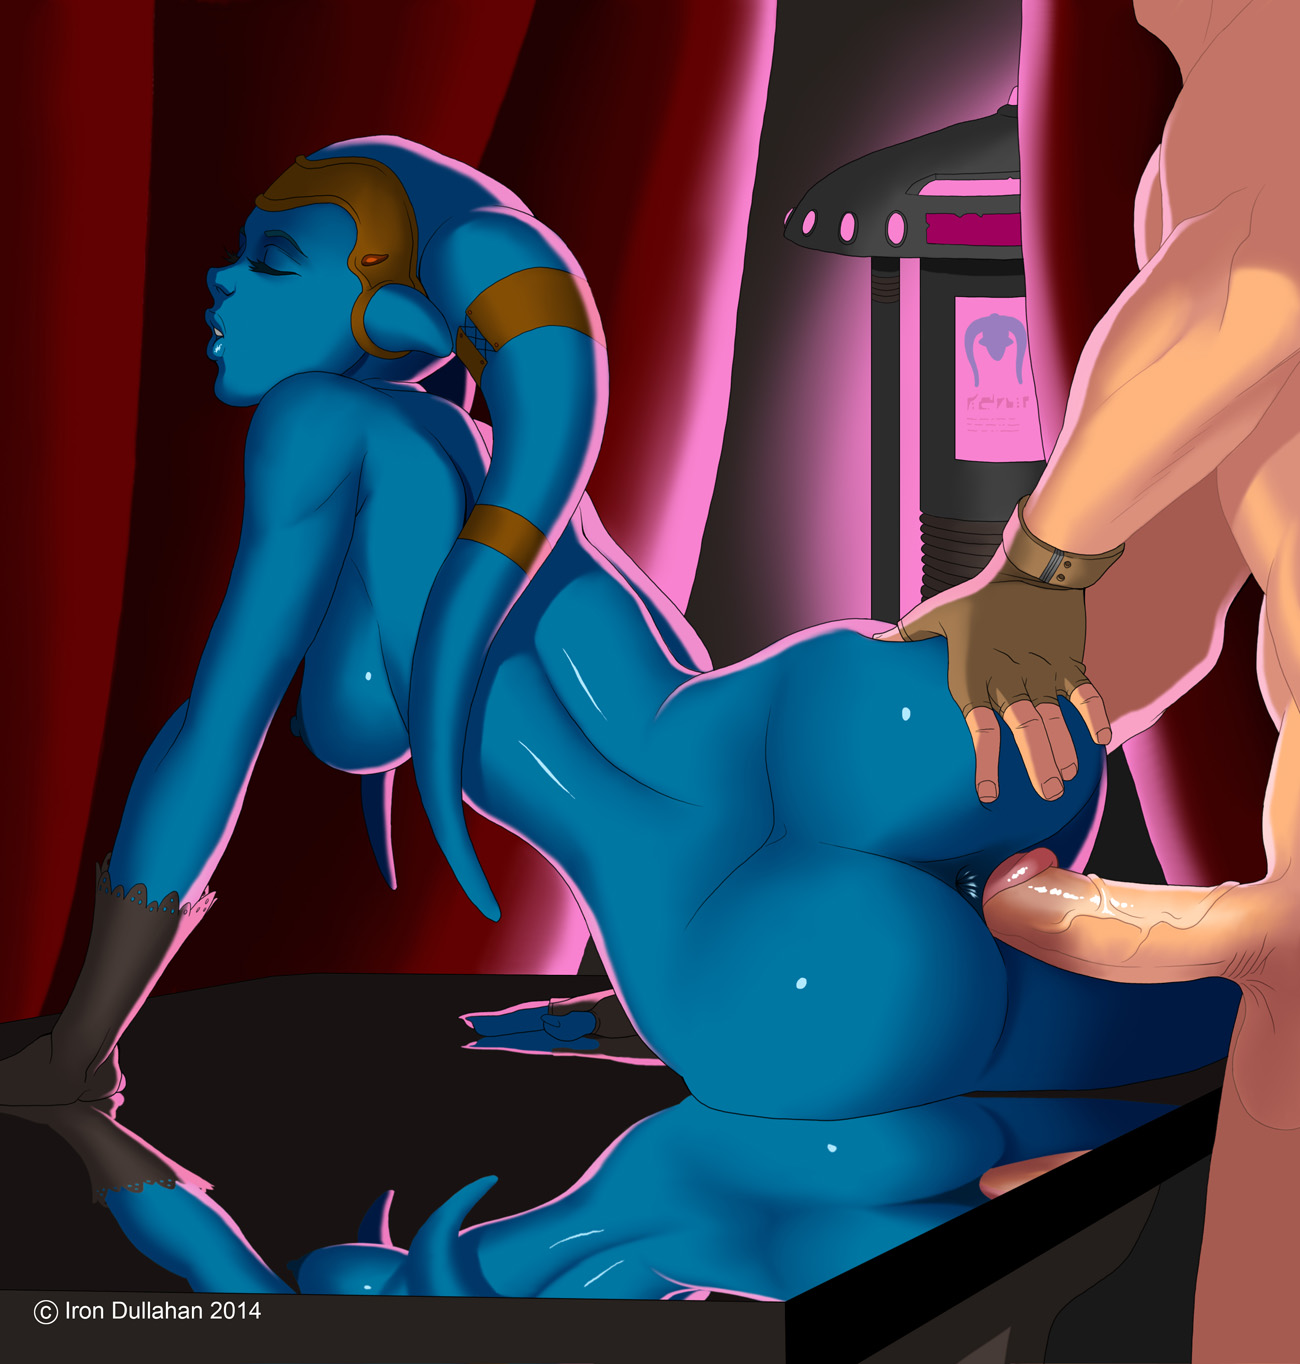 Jedi night porn video sex photo